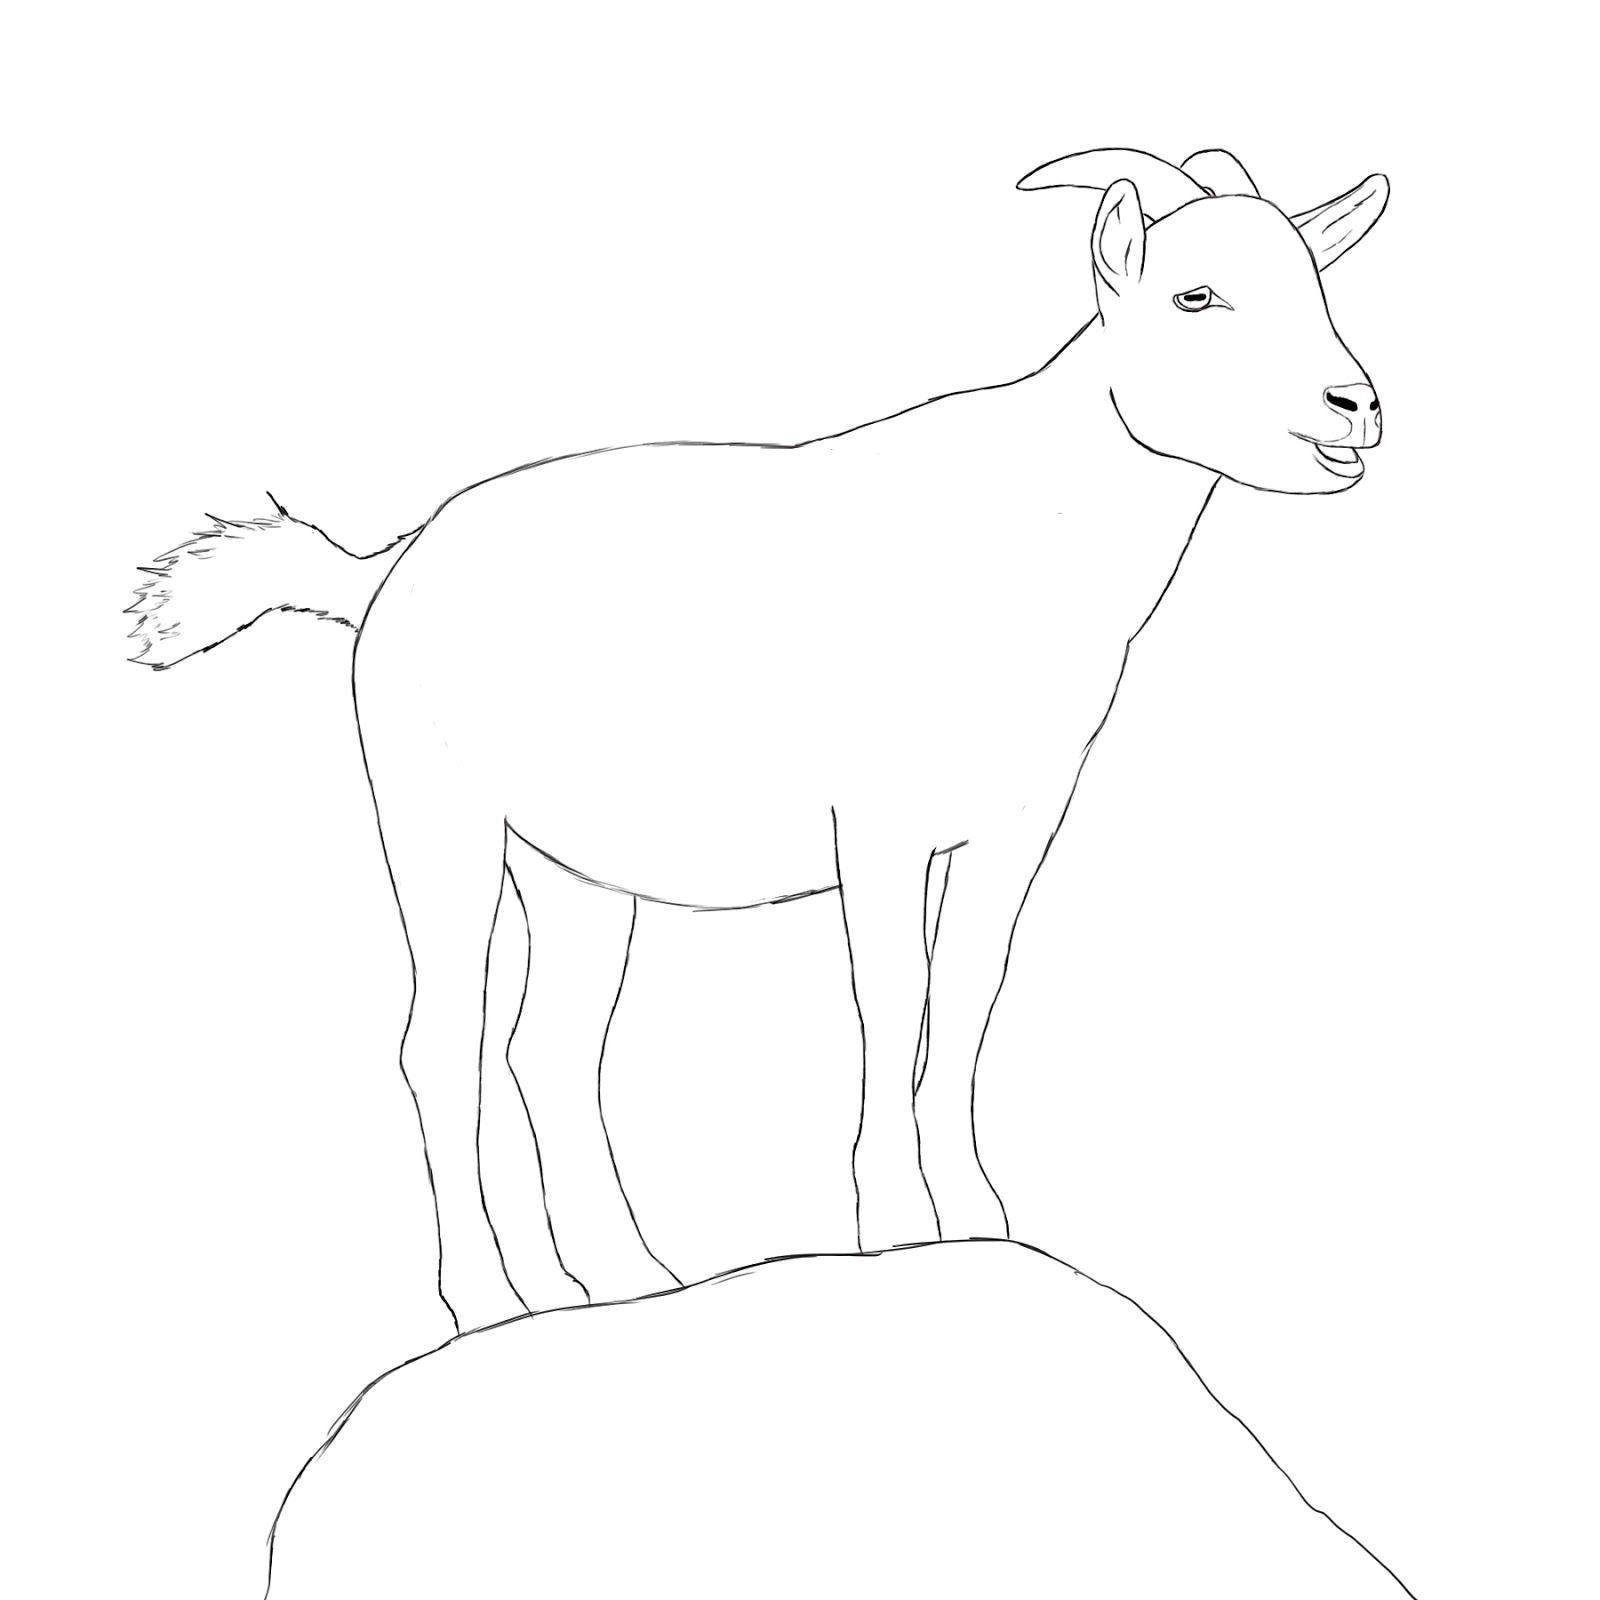 how to draw a billy goat how to draw a goat animal drawings art drawings drawings a how draw billy to goat